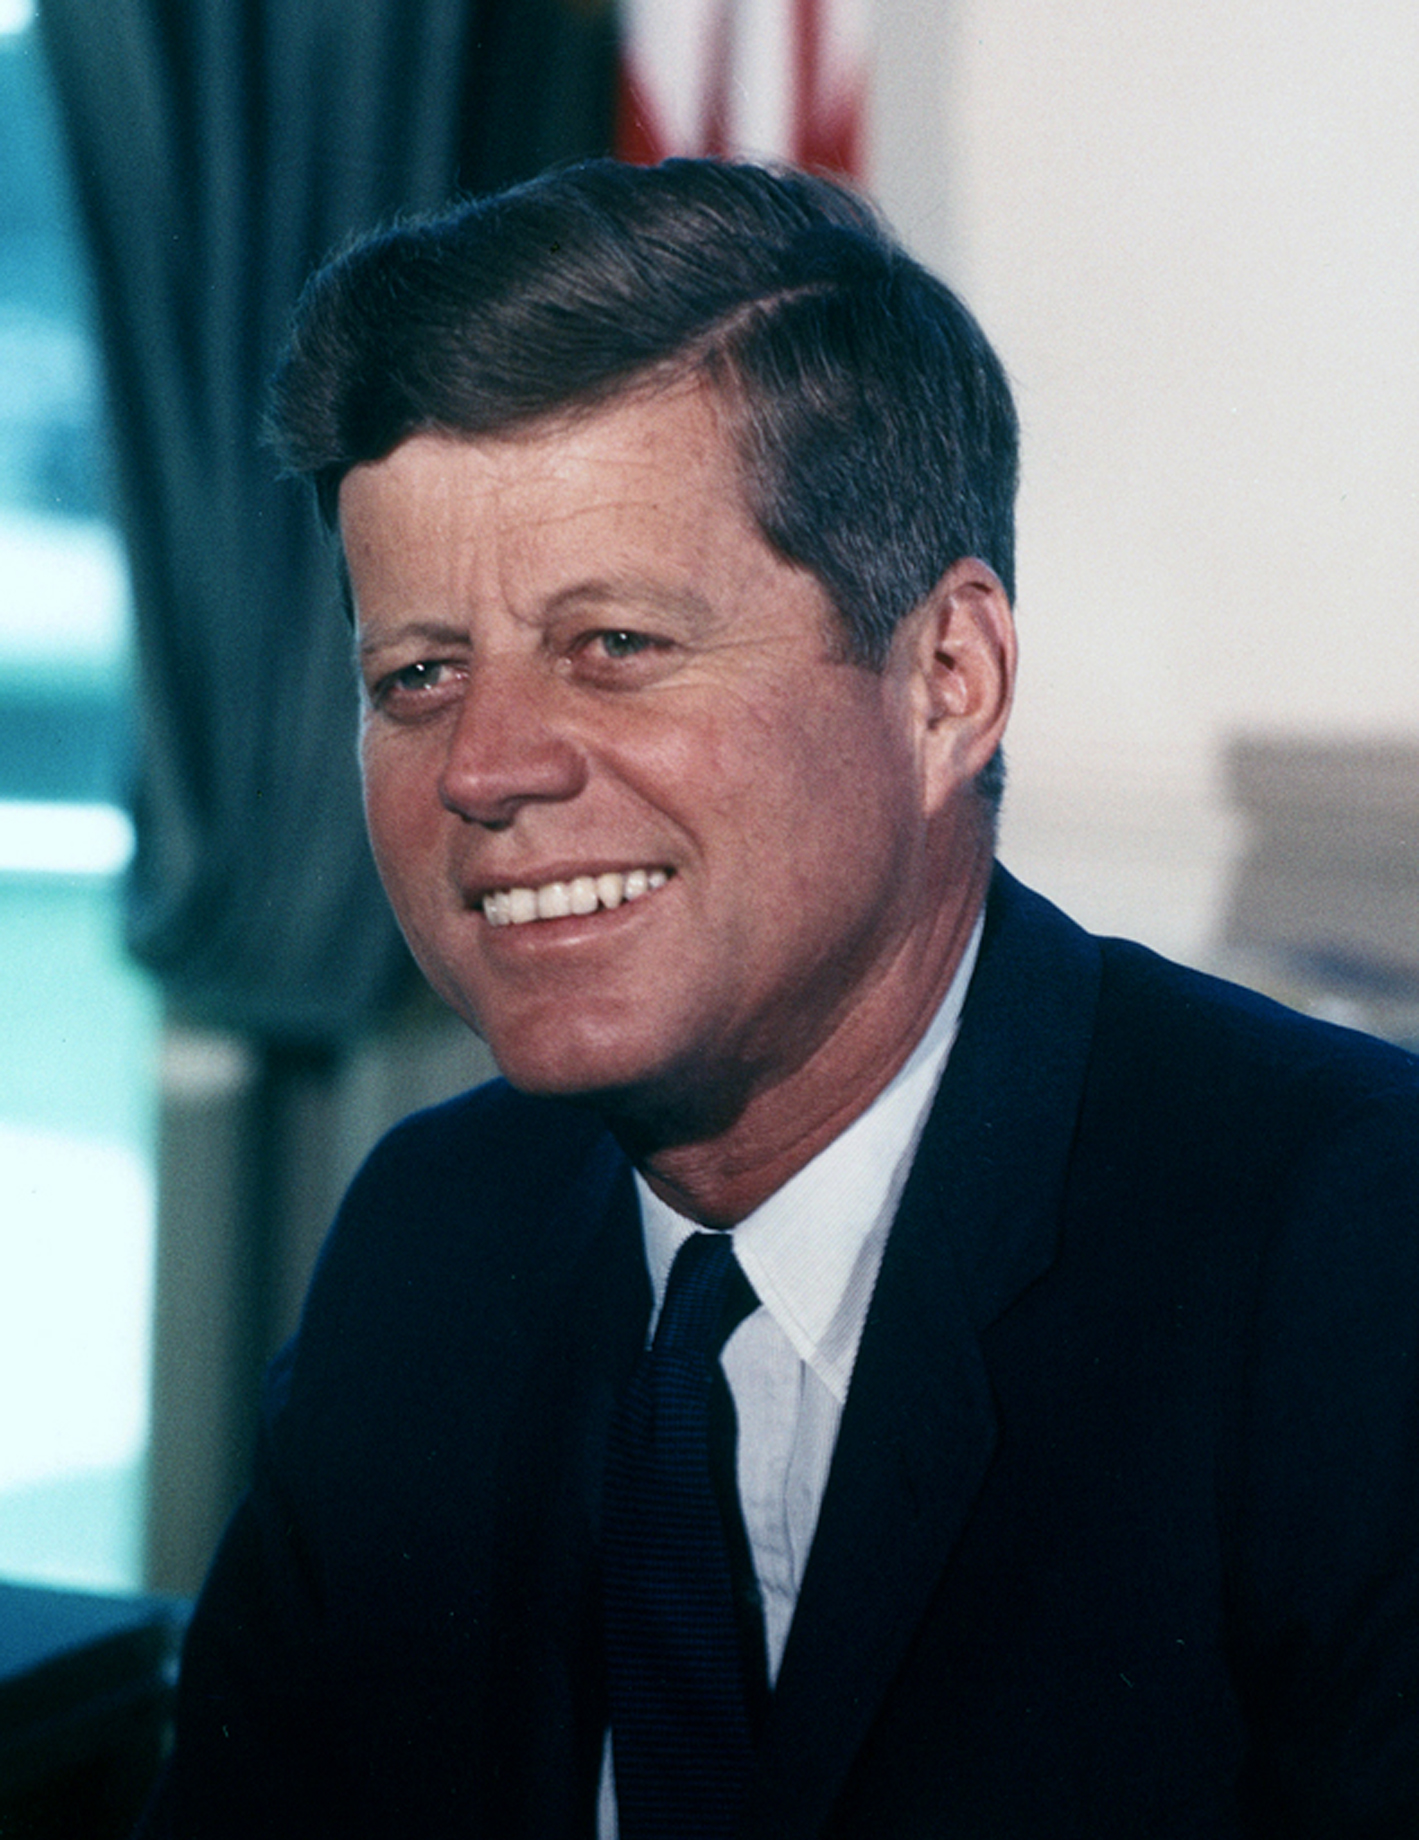 john_f-_kennedy_white_house_color_photo_portrait